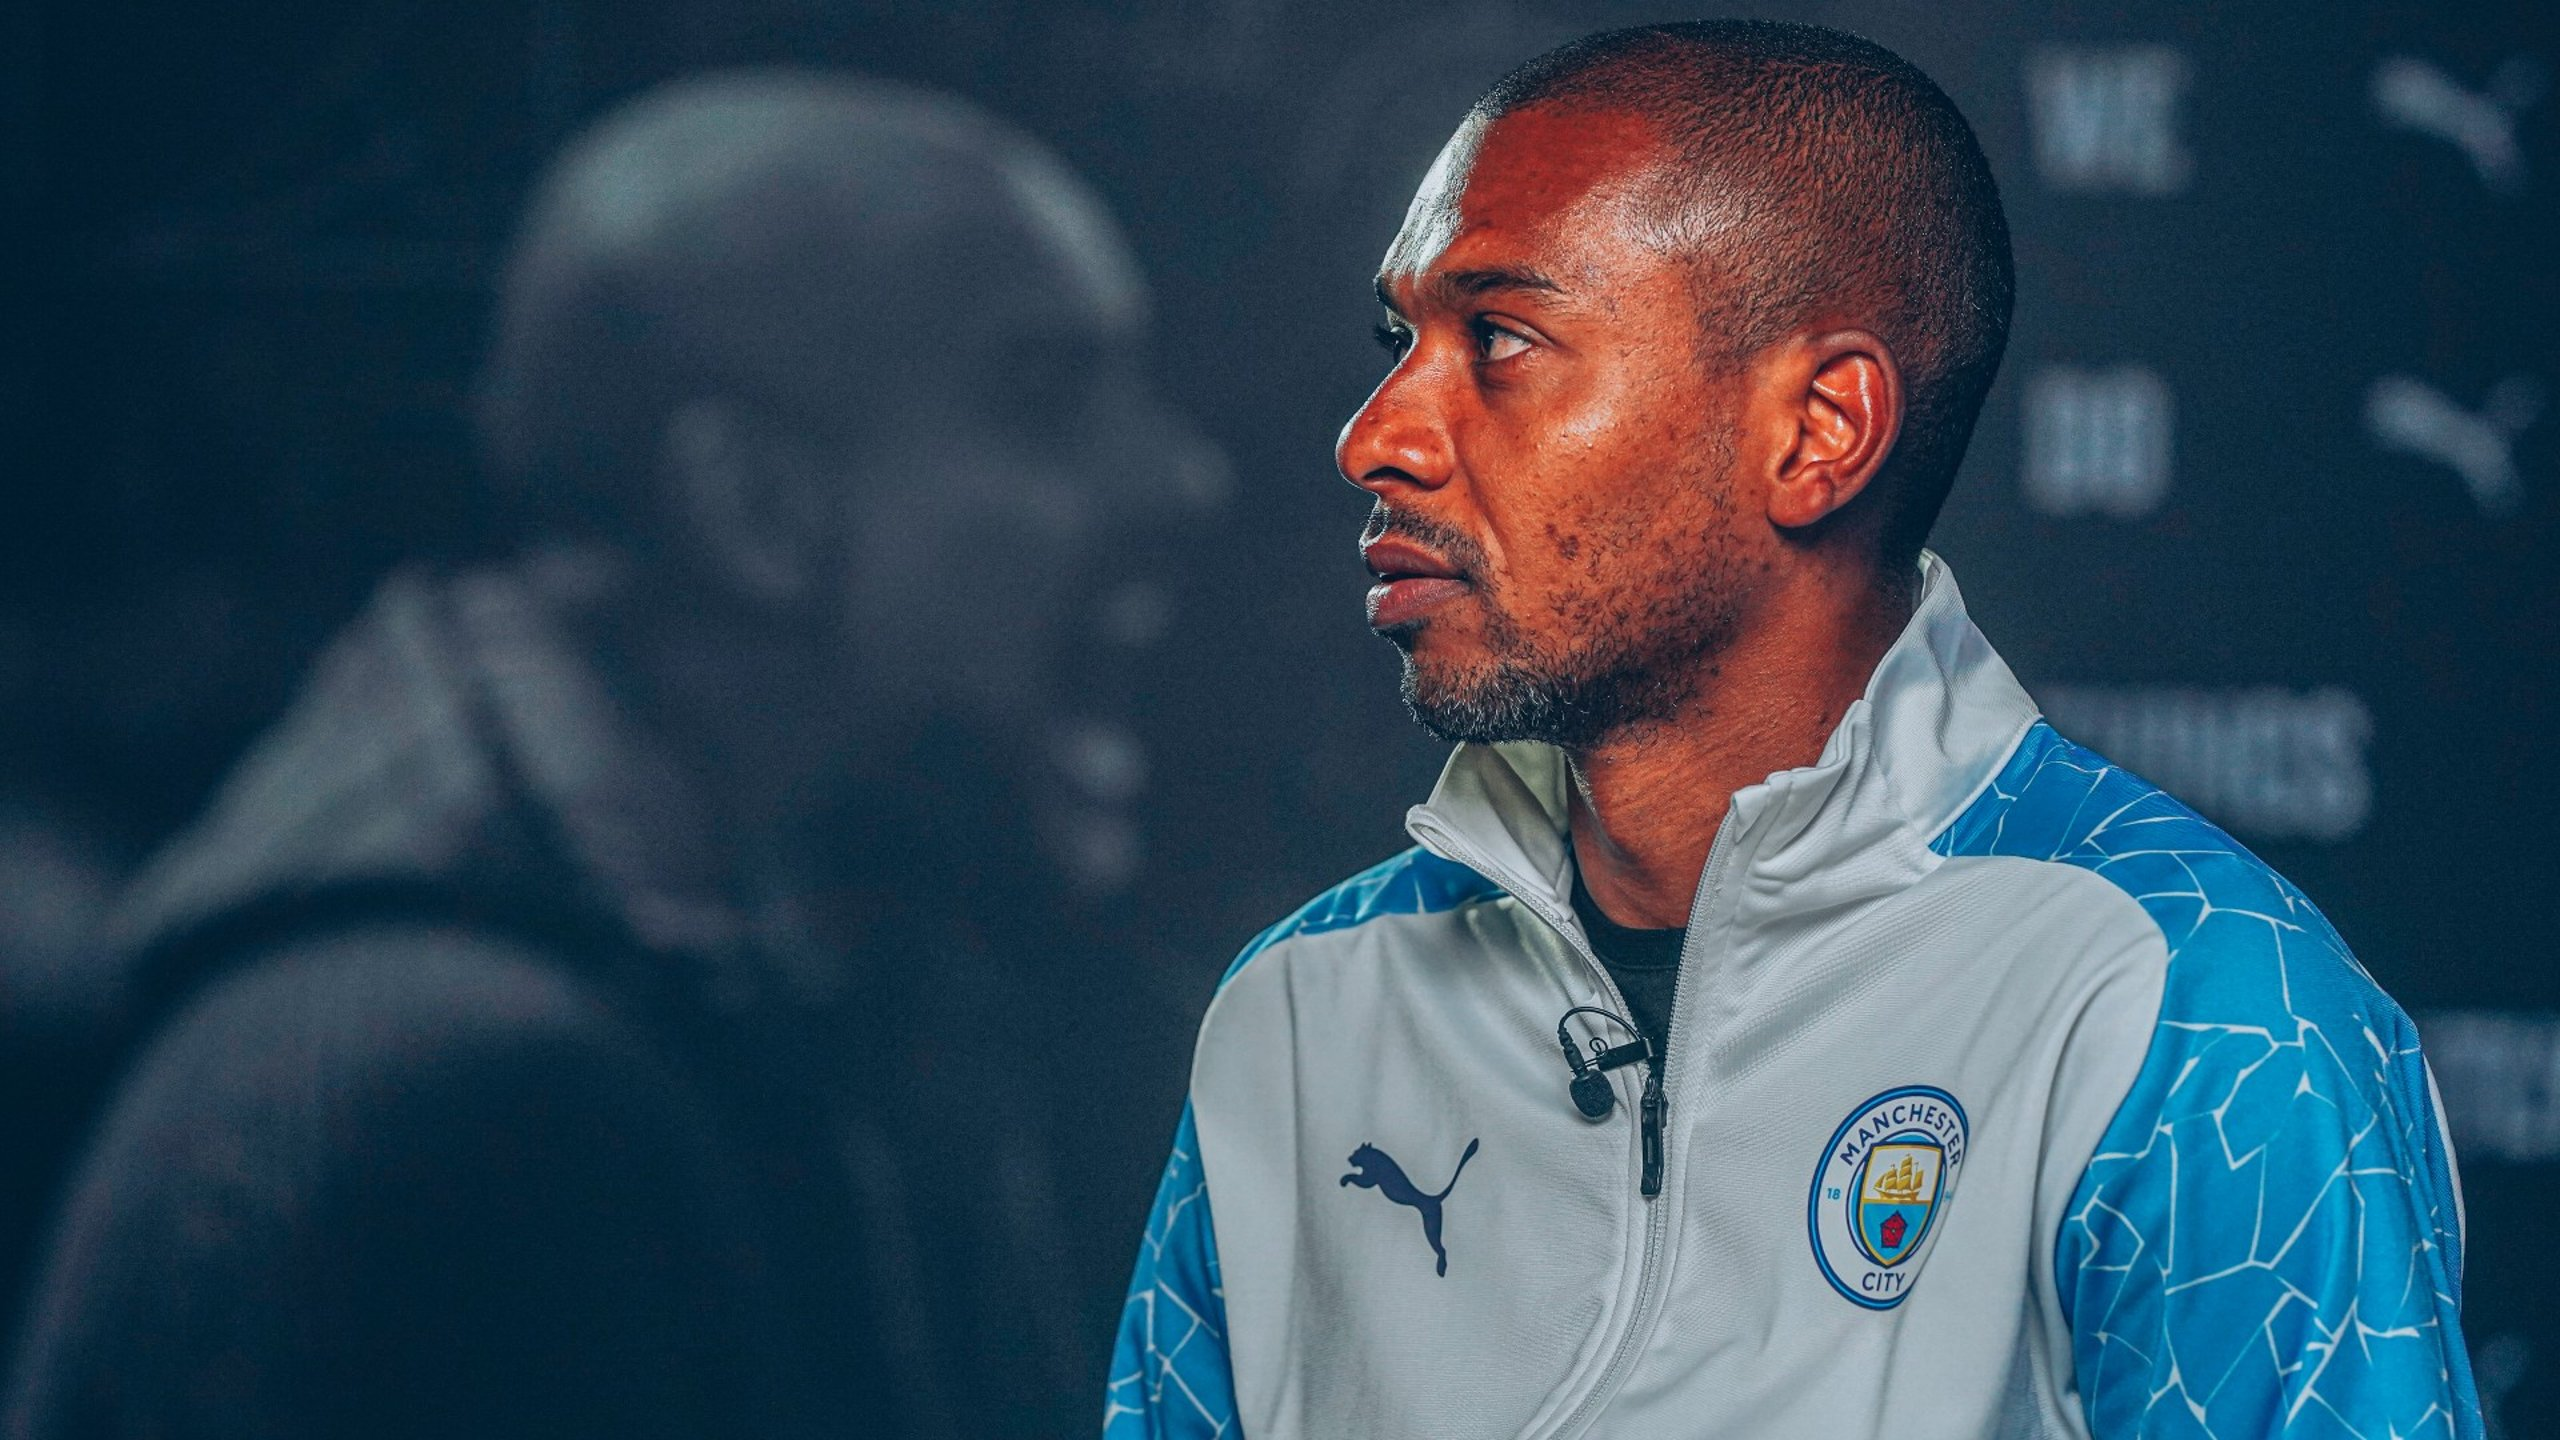 Behind-the-scenes at Fernandinho's contract extension